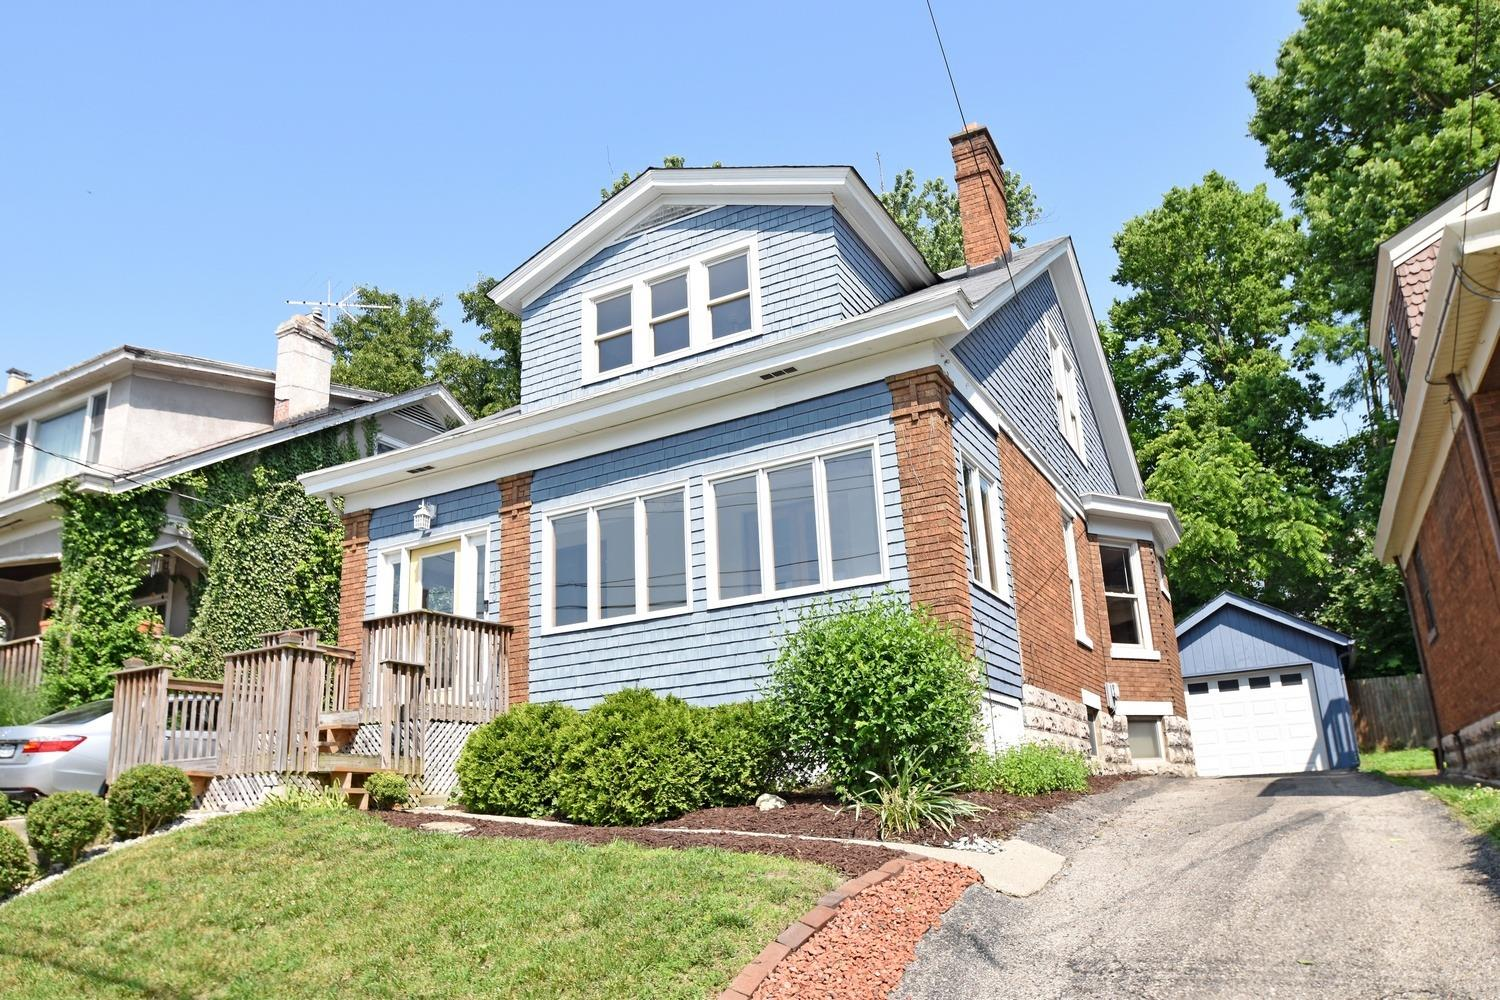 Photo 2 for 1740 E McMillan St Walnut Hills, OH 45206